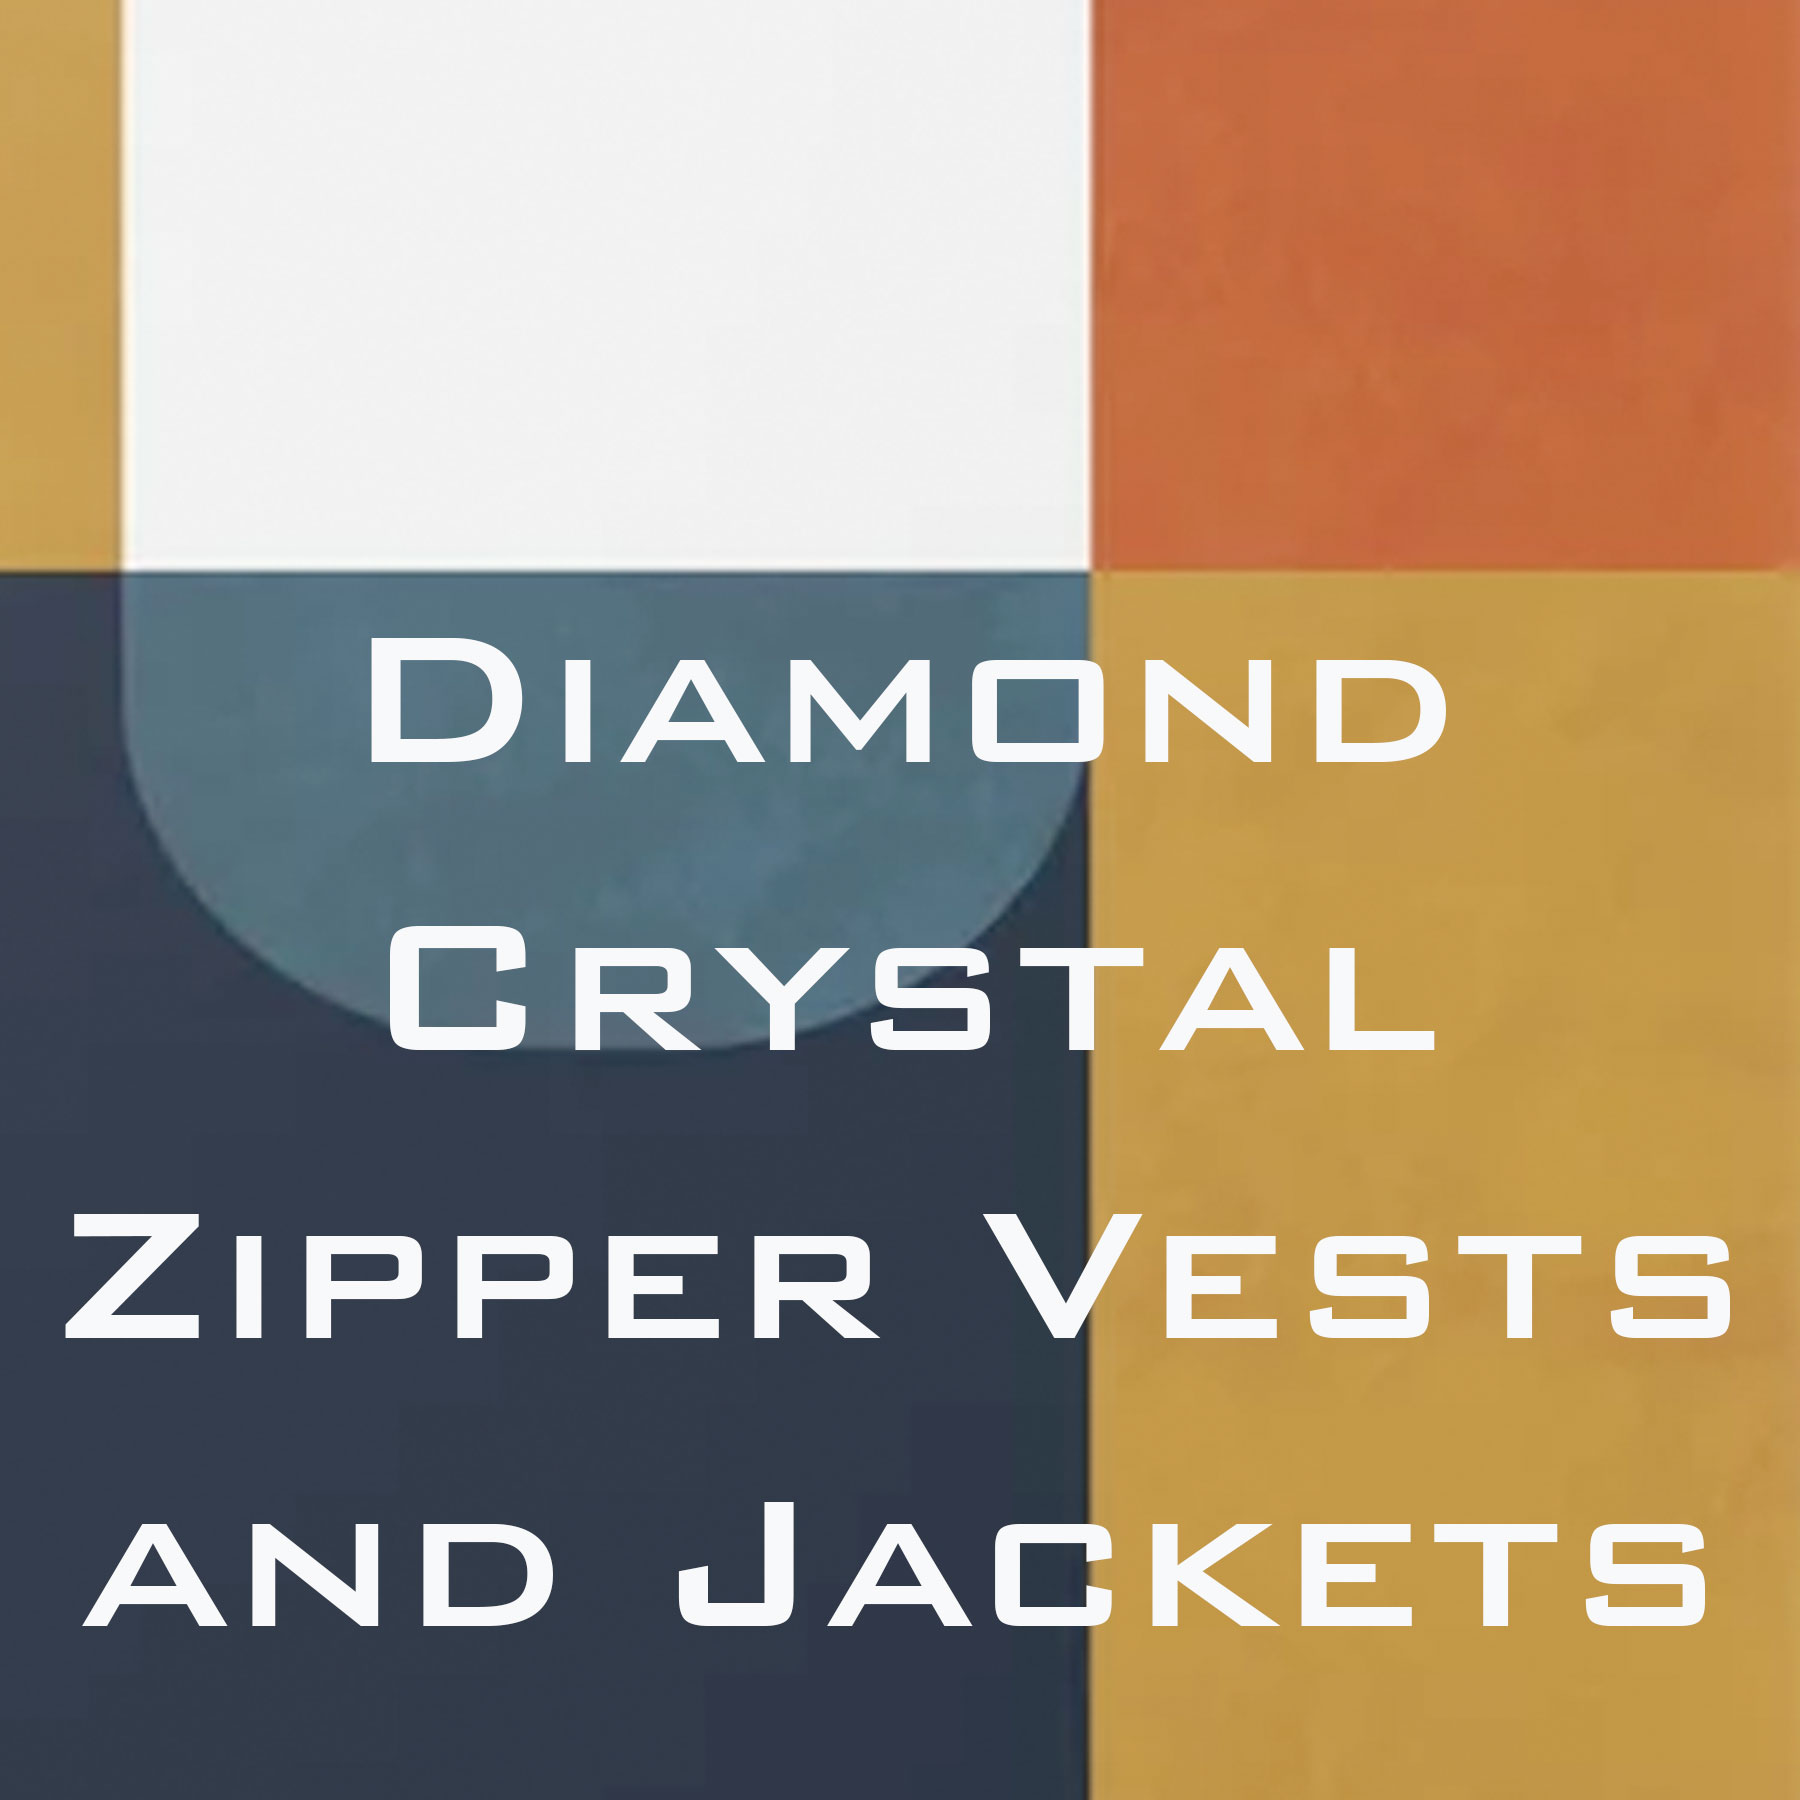 Wholesale Diamond Crystal Zipper Vests and Jackets